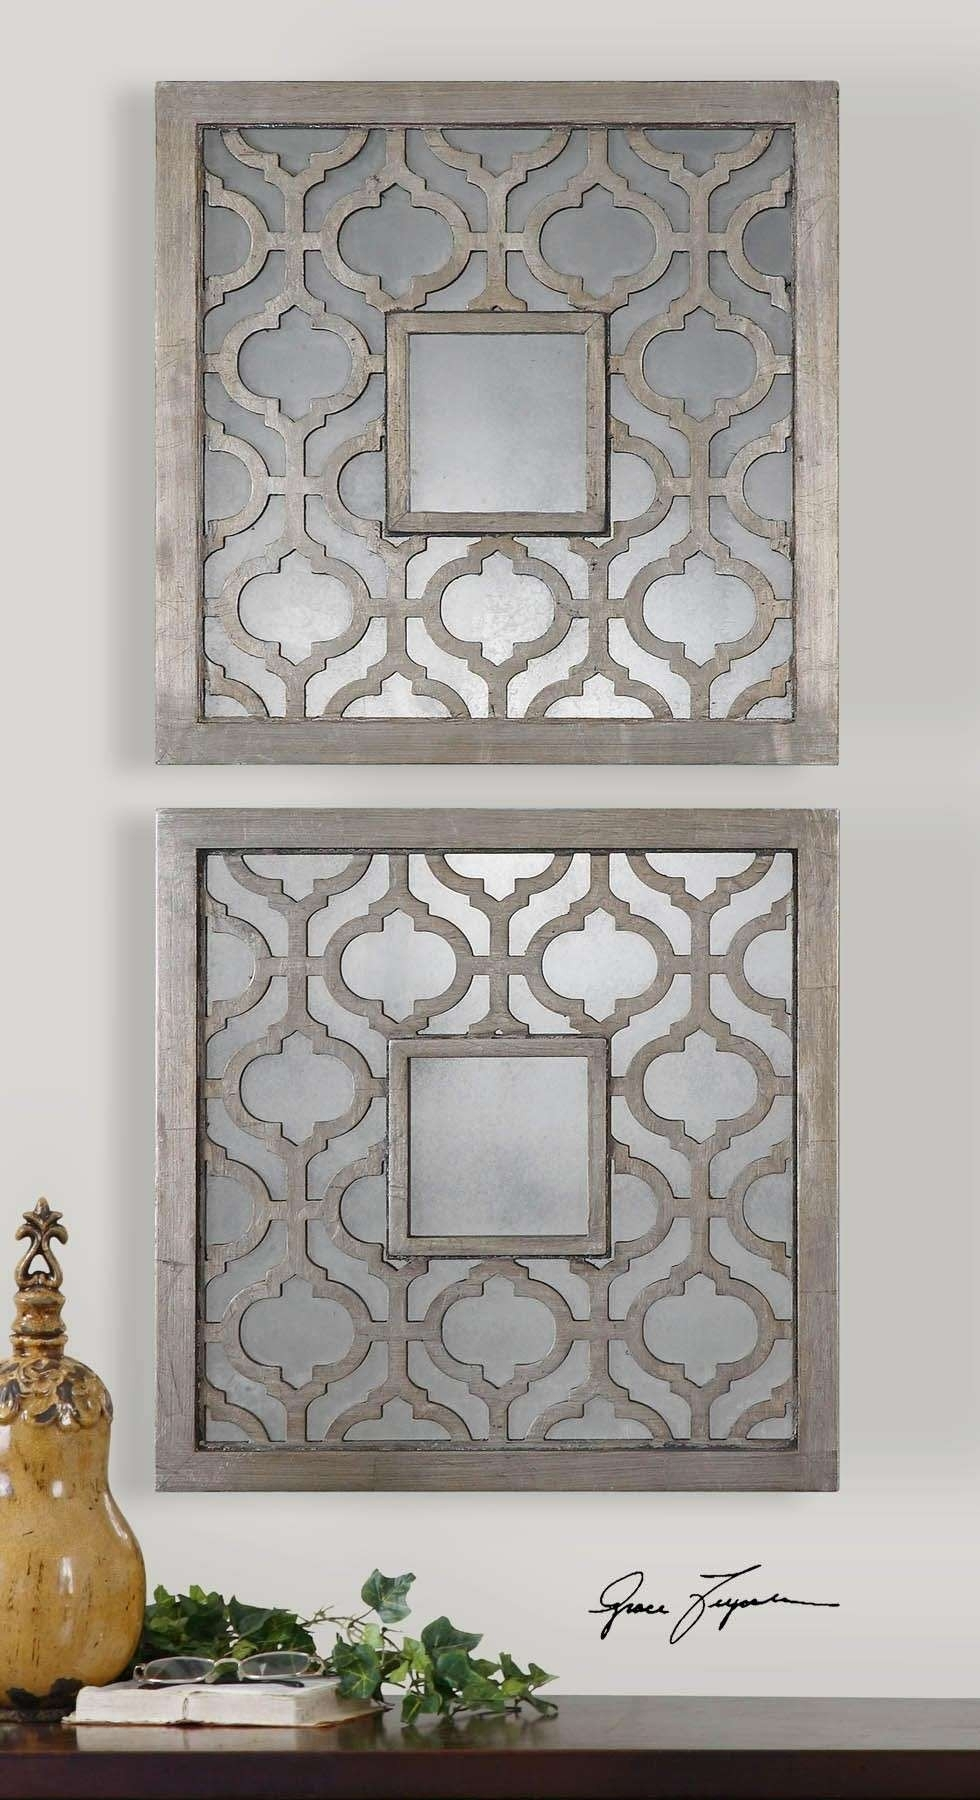 Moroccan Wall Decor Elegant Multi Piece Metal Art Image Noticeable intended for Moroccan Wall Art (Image 16 of 20)